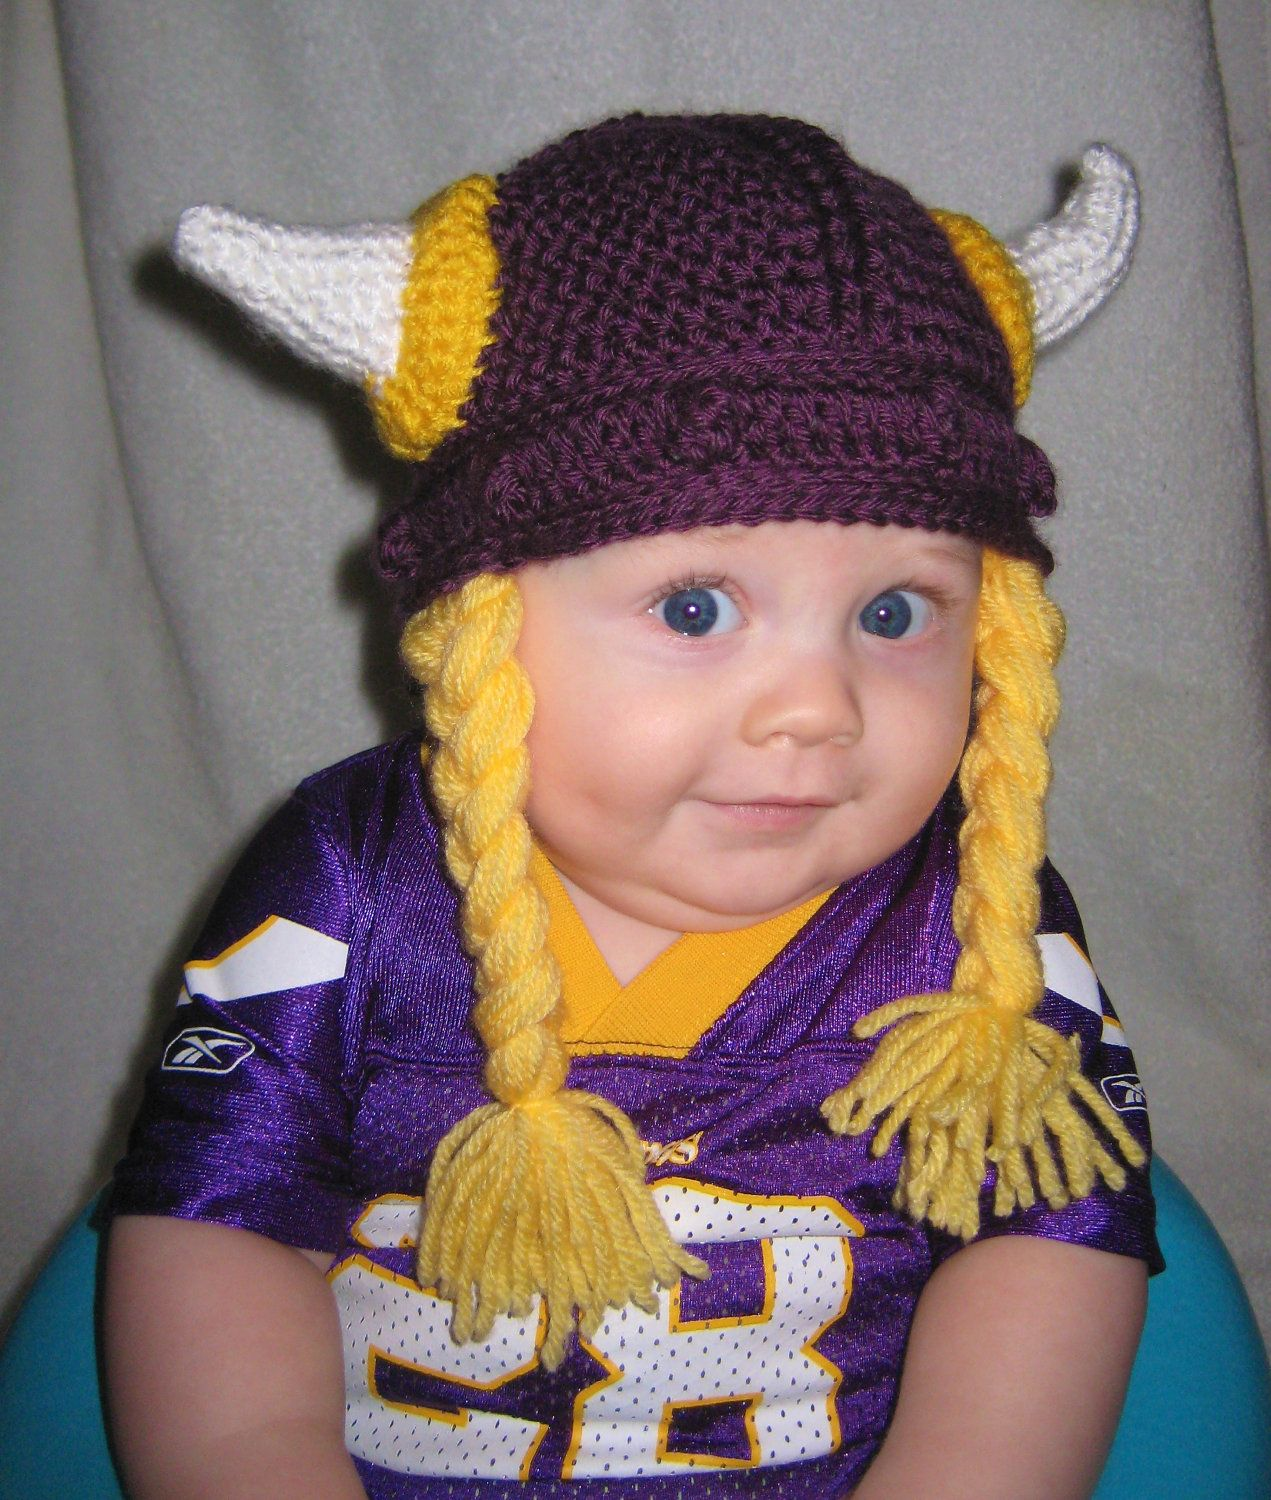 Crocheted viking helmet with braids minnesota by niftynursery crocheted viking helmet with braids minnesota by niftynursery 3000 bankloansurffo Choice Image